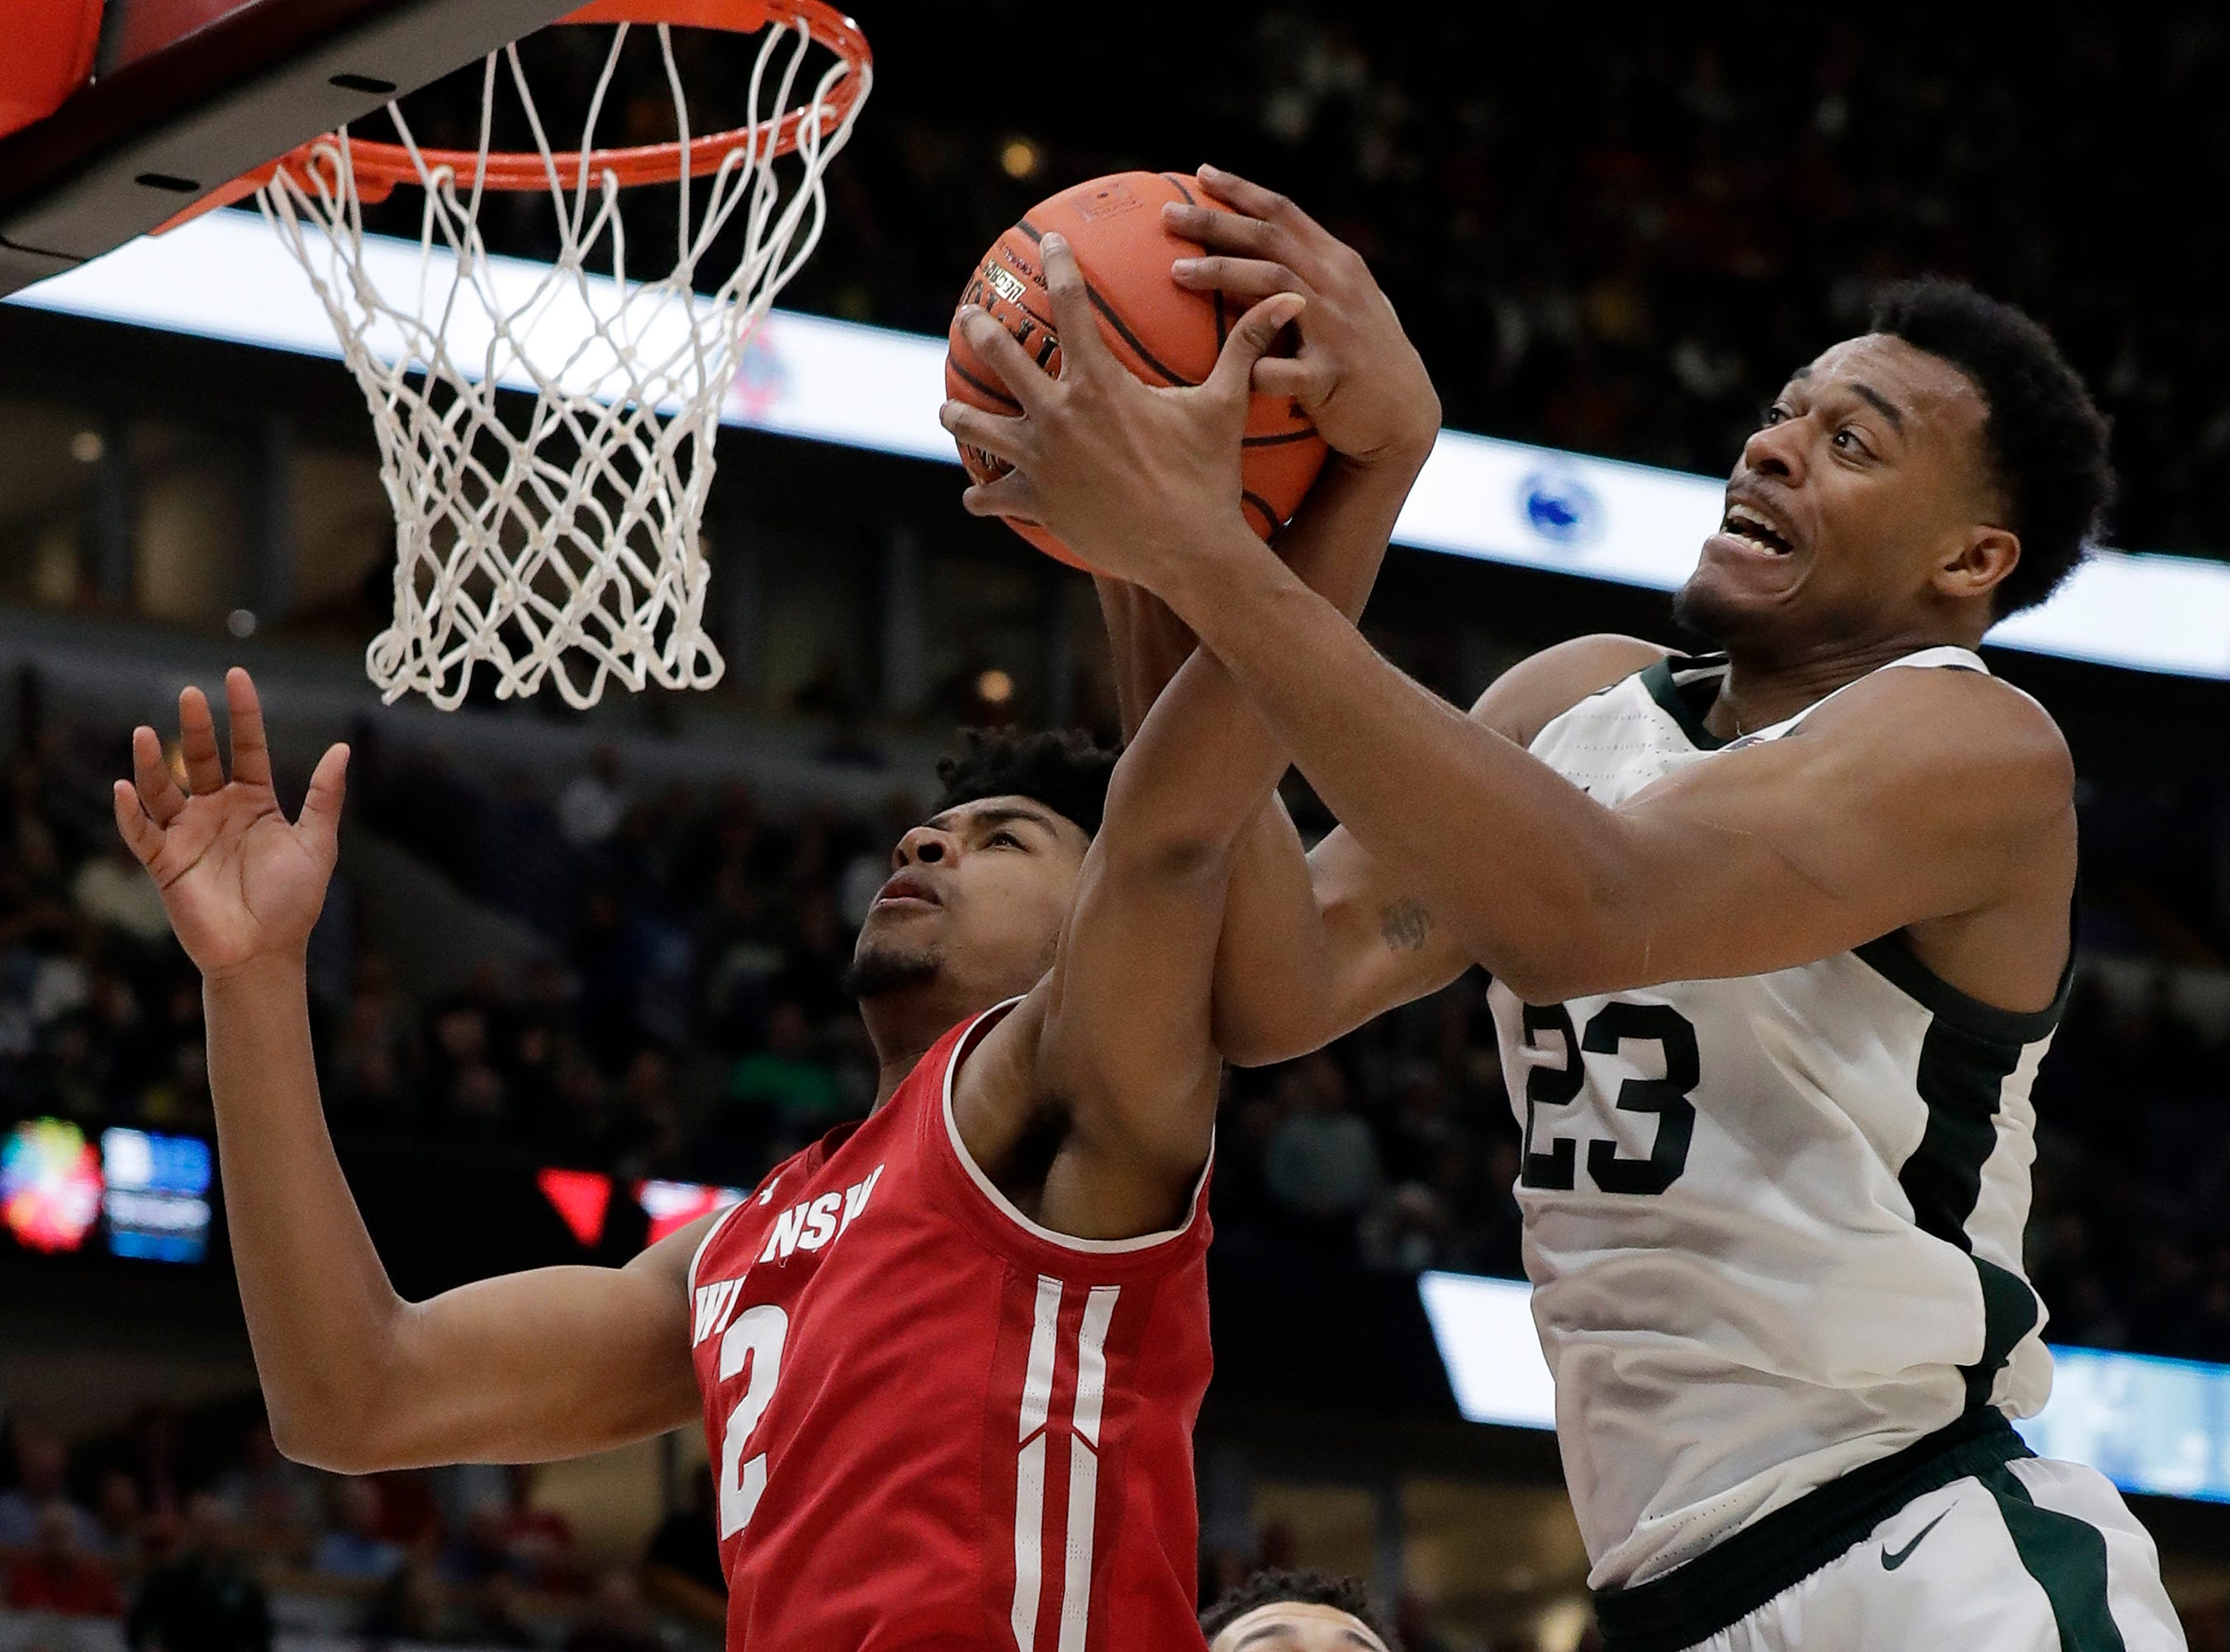 Wisconsin's Aleem Ford (2) and Michigan State's Xavier Tillman (23) battle for a rebound during the second half of an NCAA college basketball game in the semifinals of the Big Ten Conference tournament, Saturday, March 16, 2019, in Chicago.